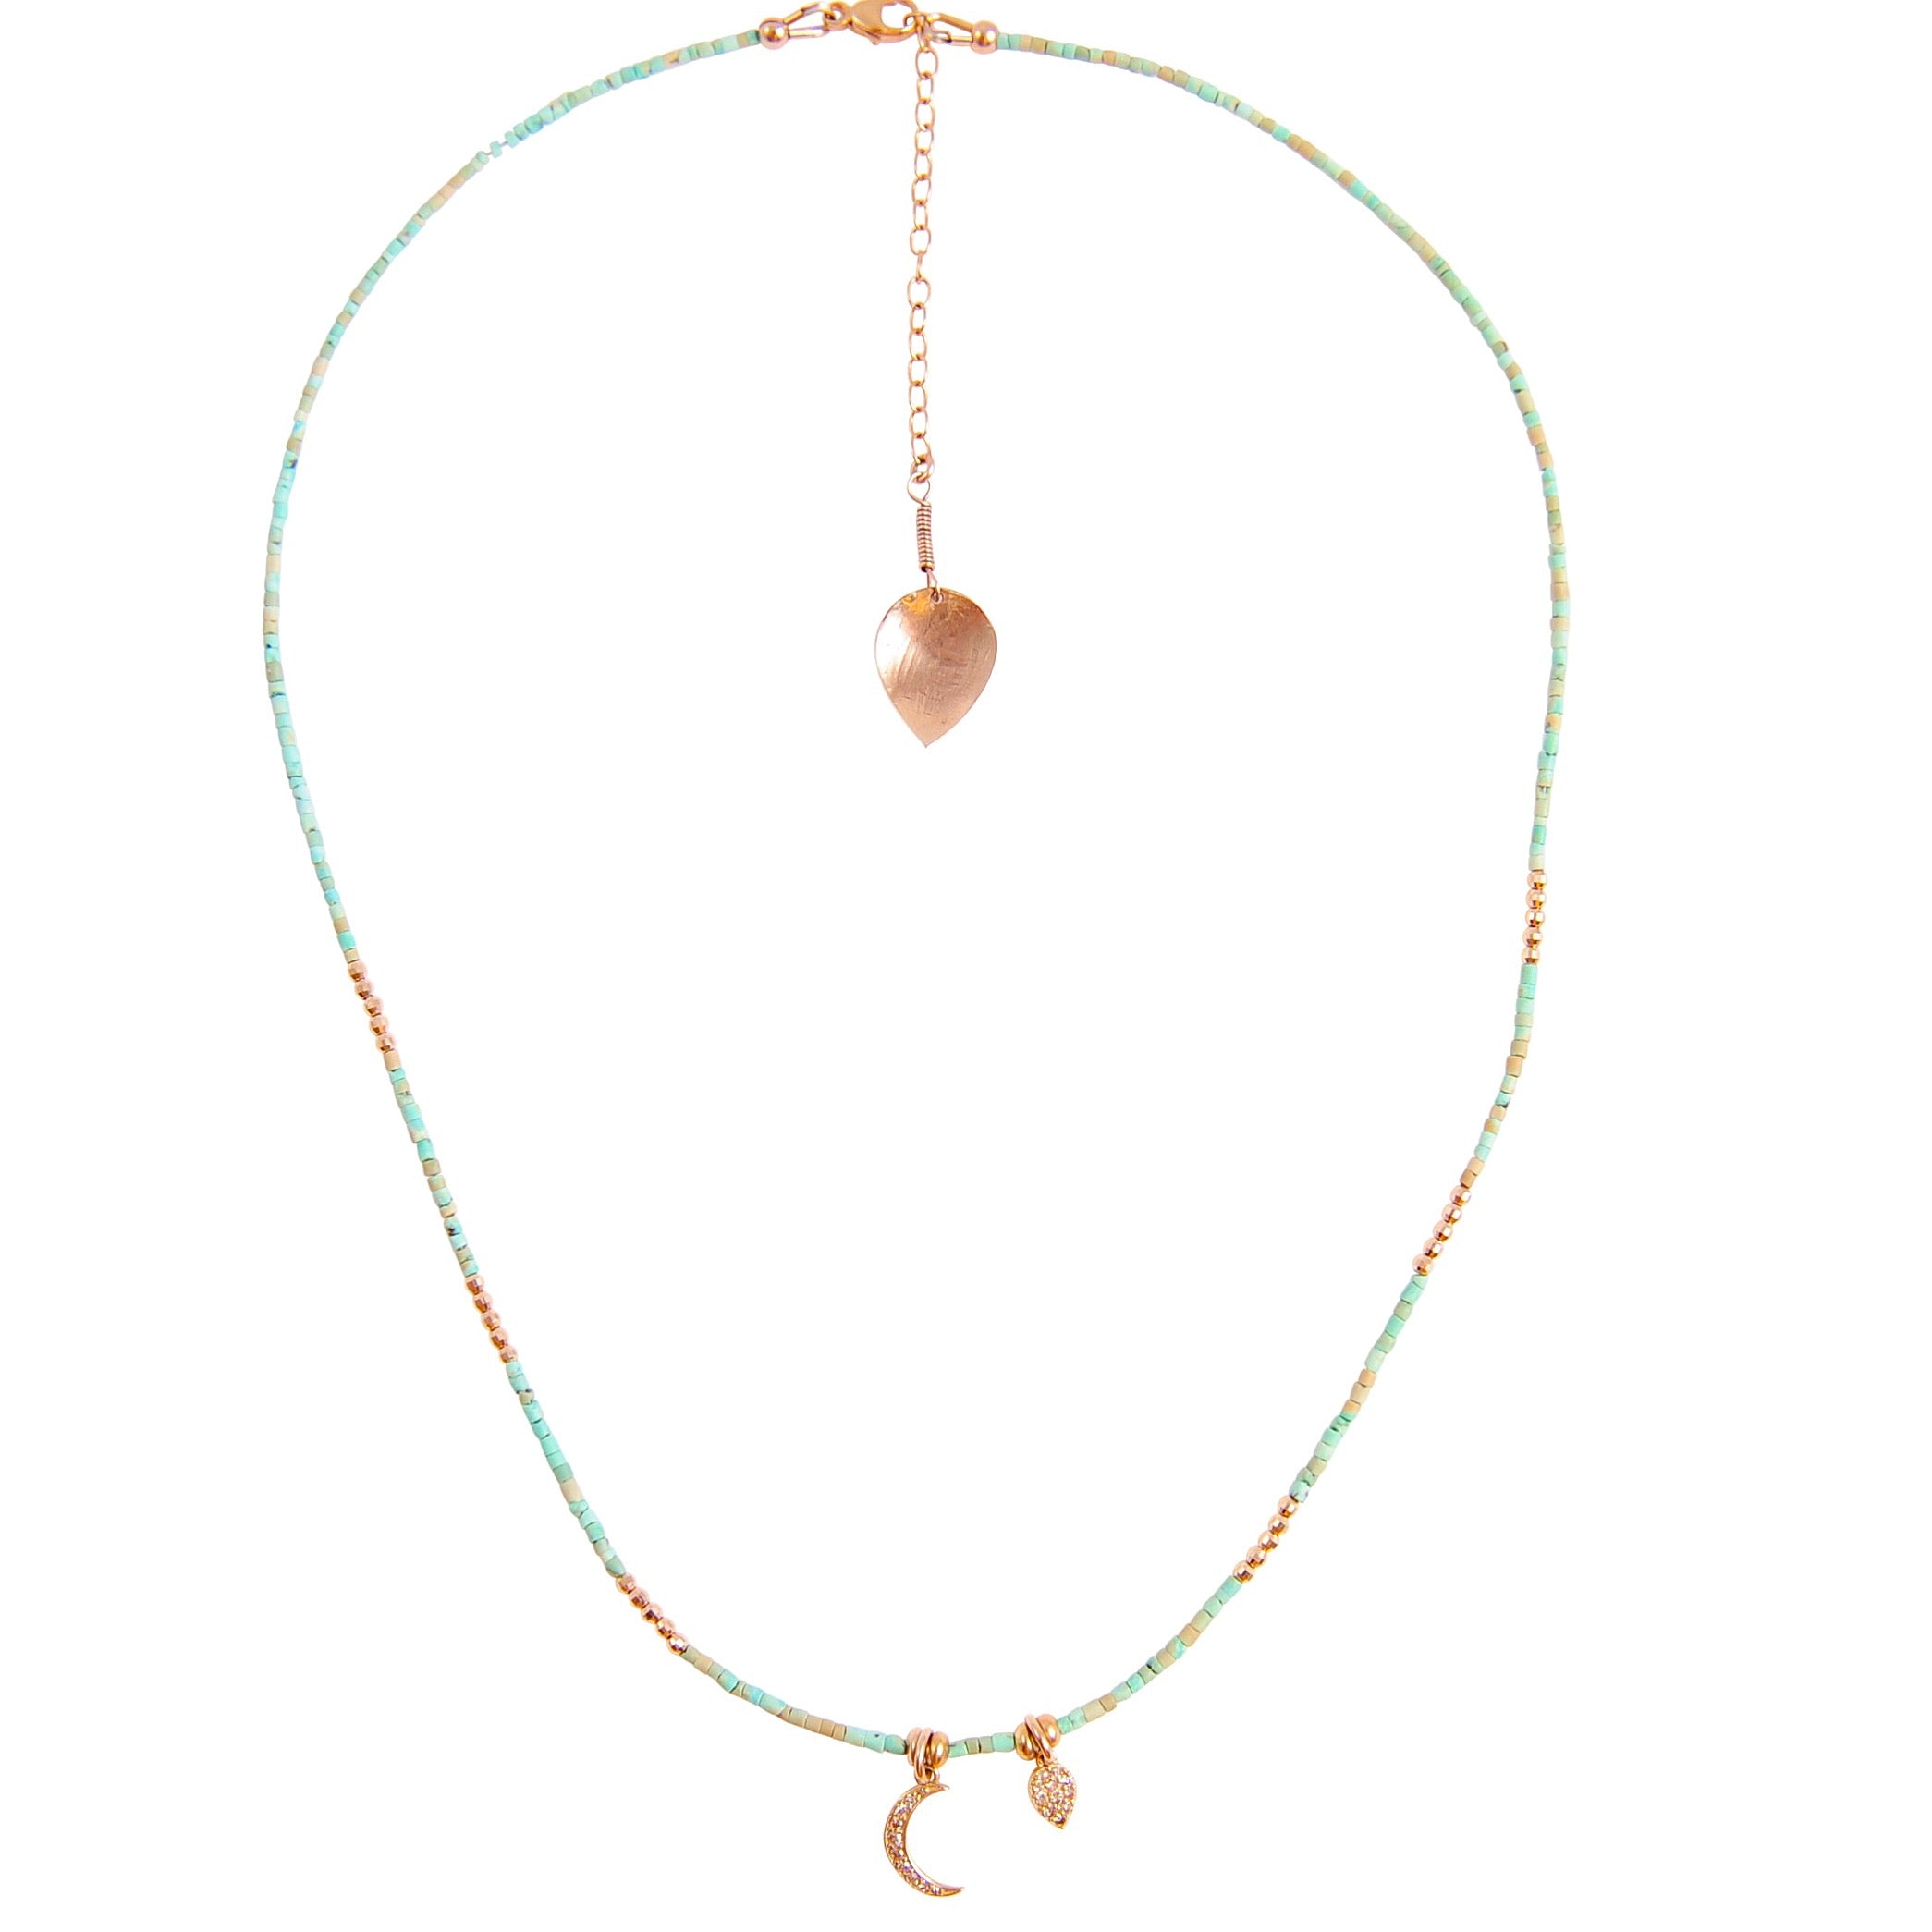 TULUM TURQUOISE CHARM NECKLACE COLLECTION